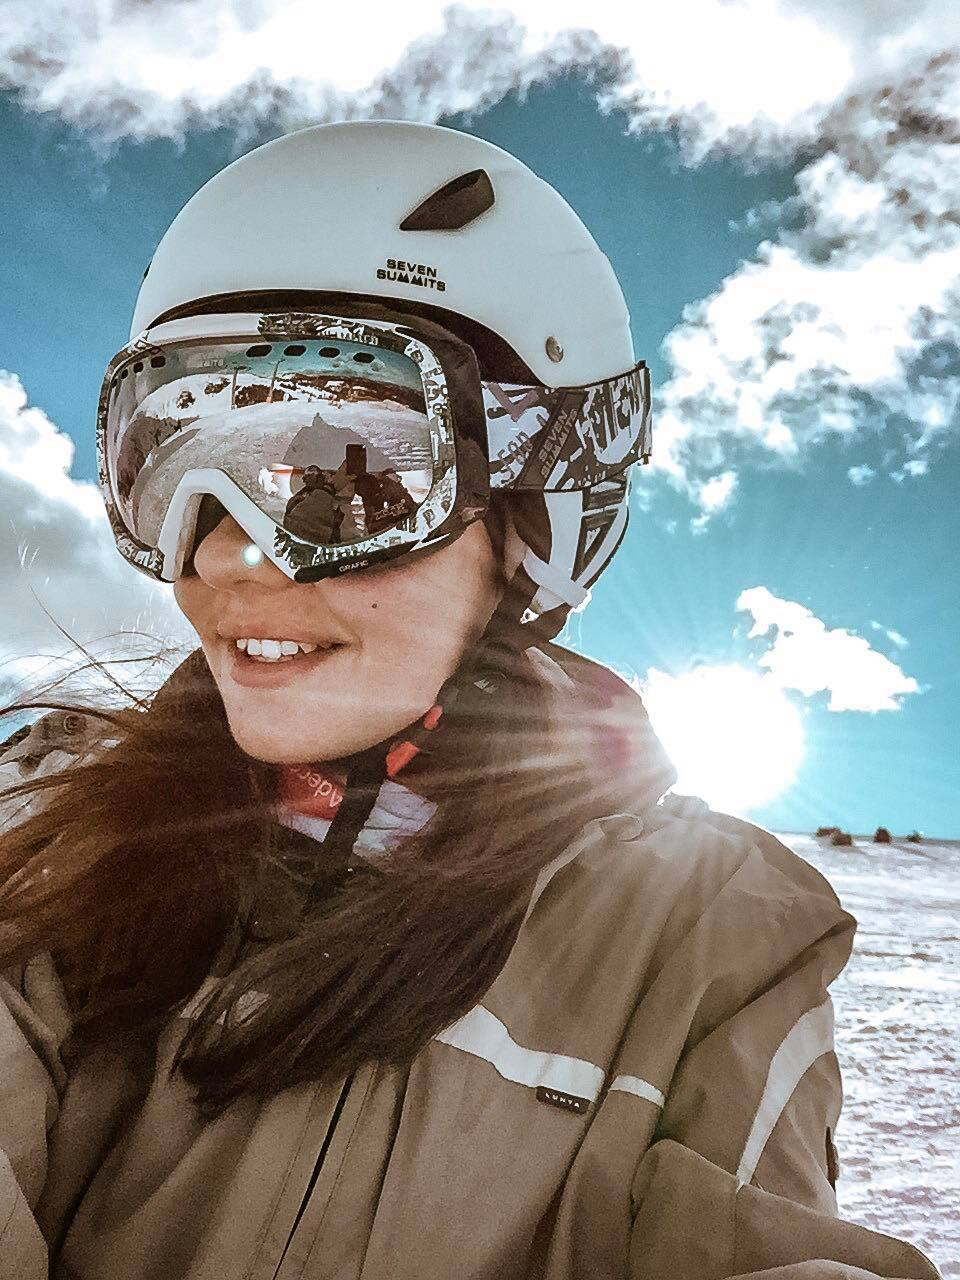 snowboard in Austria, austrian blogger, lifestyle blog, travel girl, inspiring travel blog